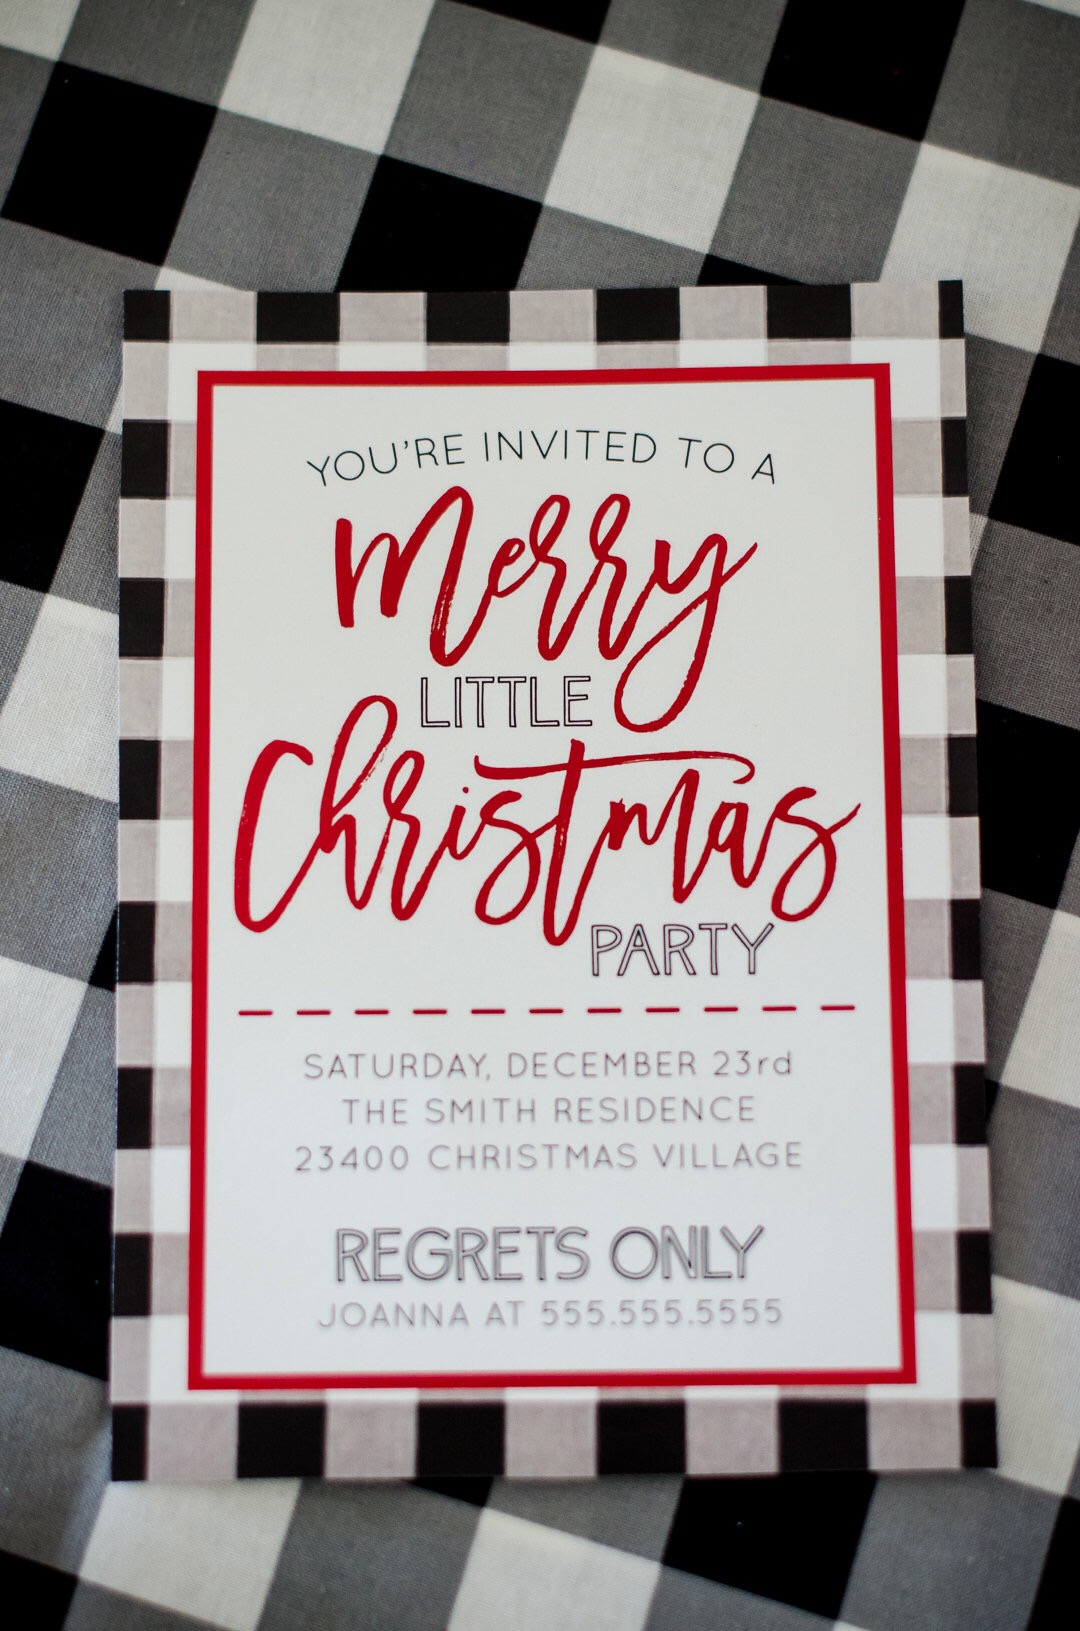 You're invited to a merry little Christmas party. The buffalo check print on this Christmas party invitation gives it the perfect farmhouse/fixer upper look. See more holiday party inspiration from Austin based party stylist Mint Event Design at www.minteventdesign.com #partyinvitation #holidayparty #holidays #partyideas #christmasparty #holidaypartyideas